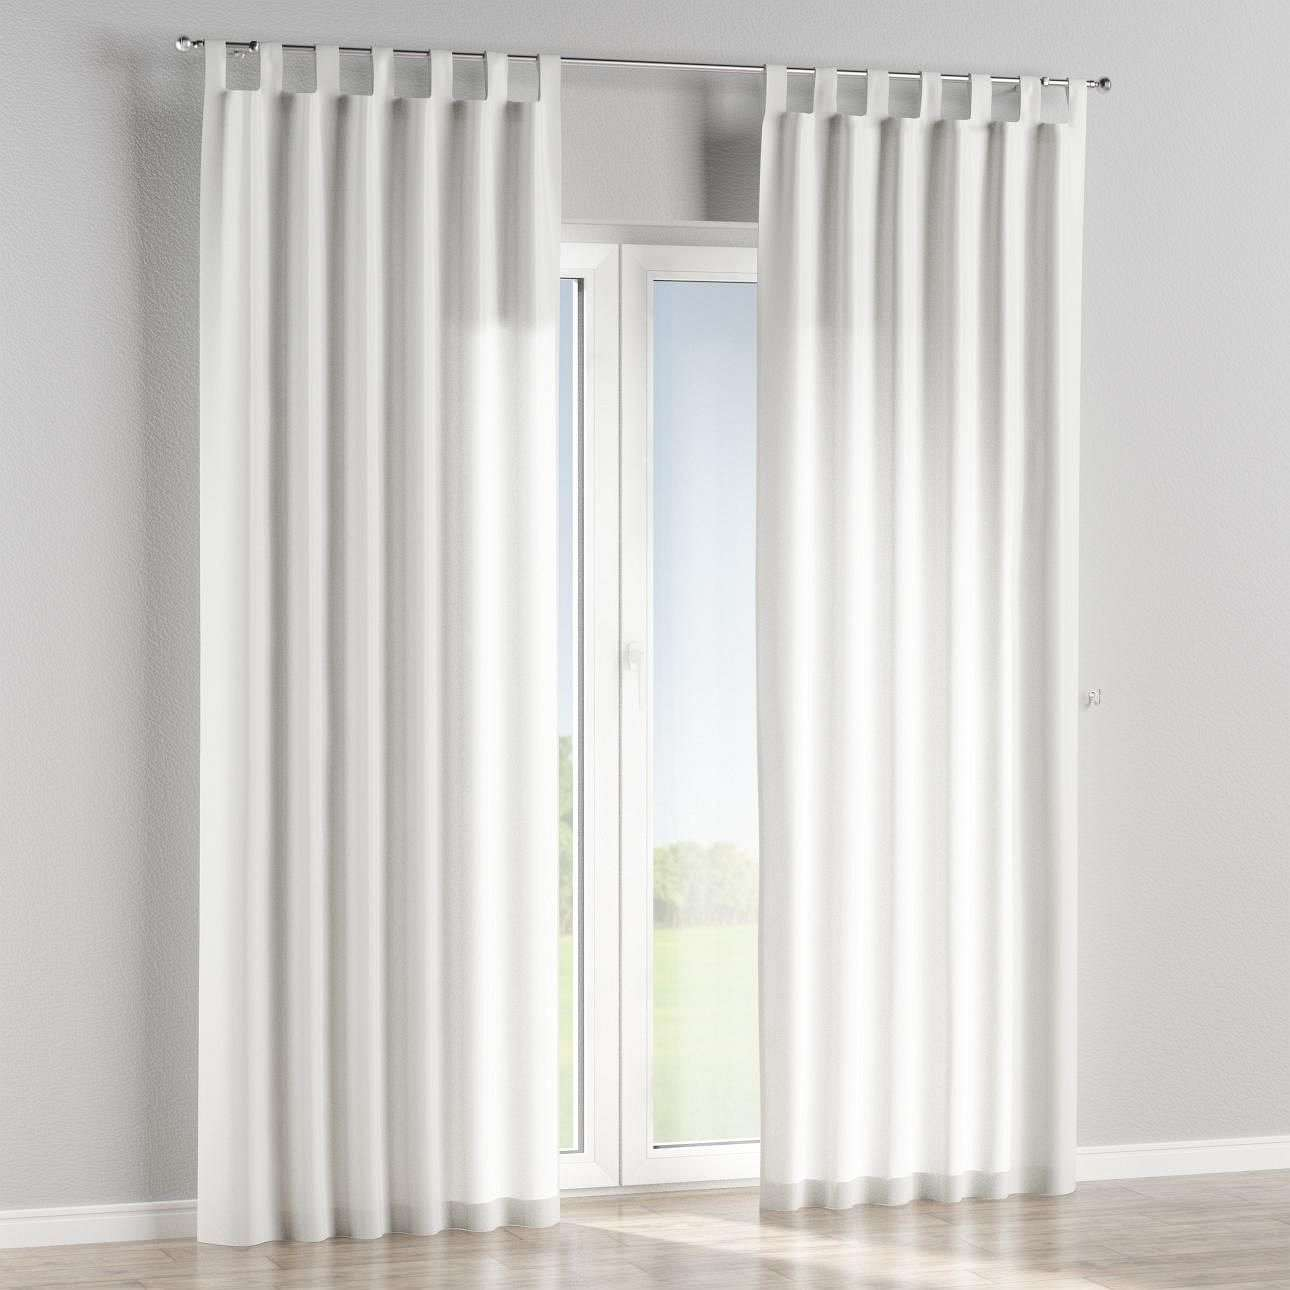 Tab top lined curtains in collection SALE, fabric: 137-26